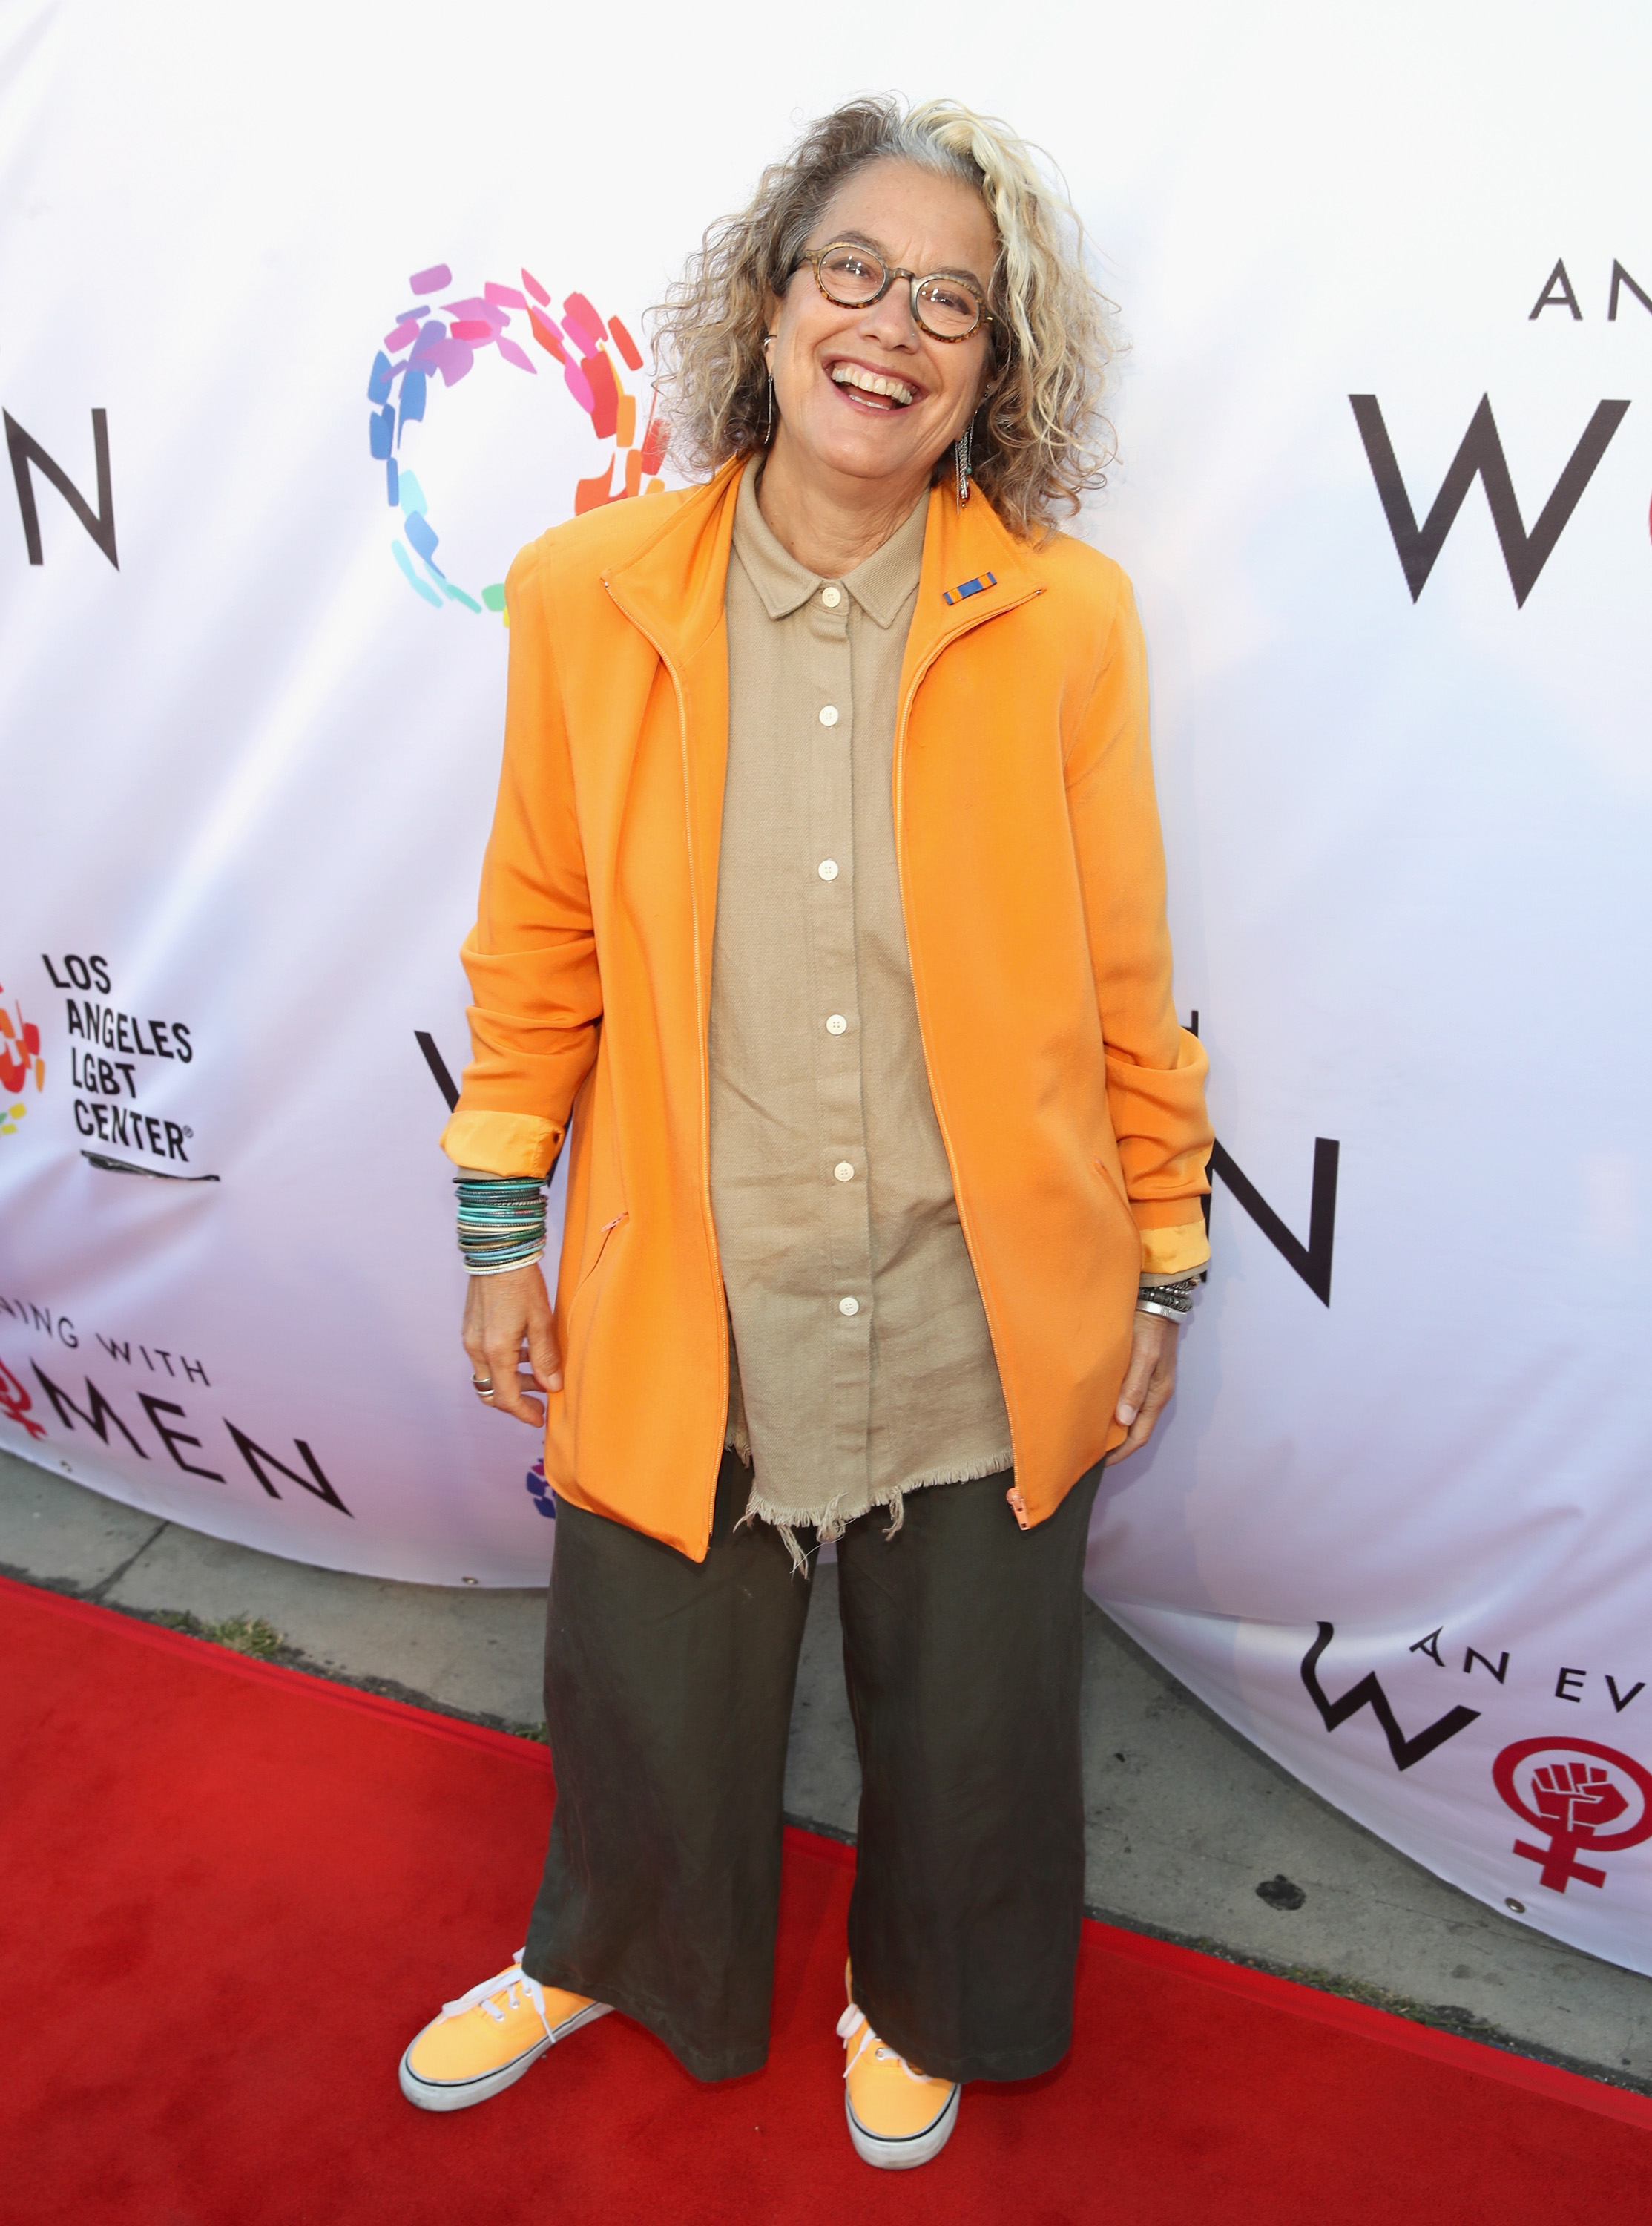 Los Angeles LGBT Center's 'An Evening With Women'